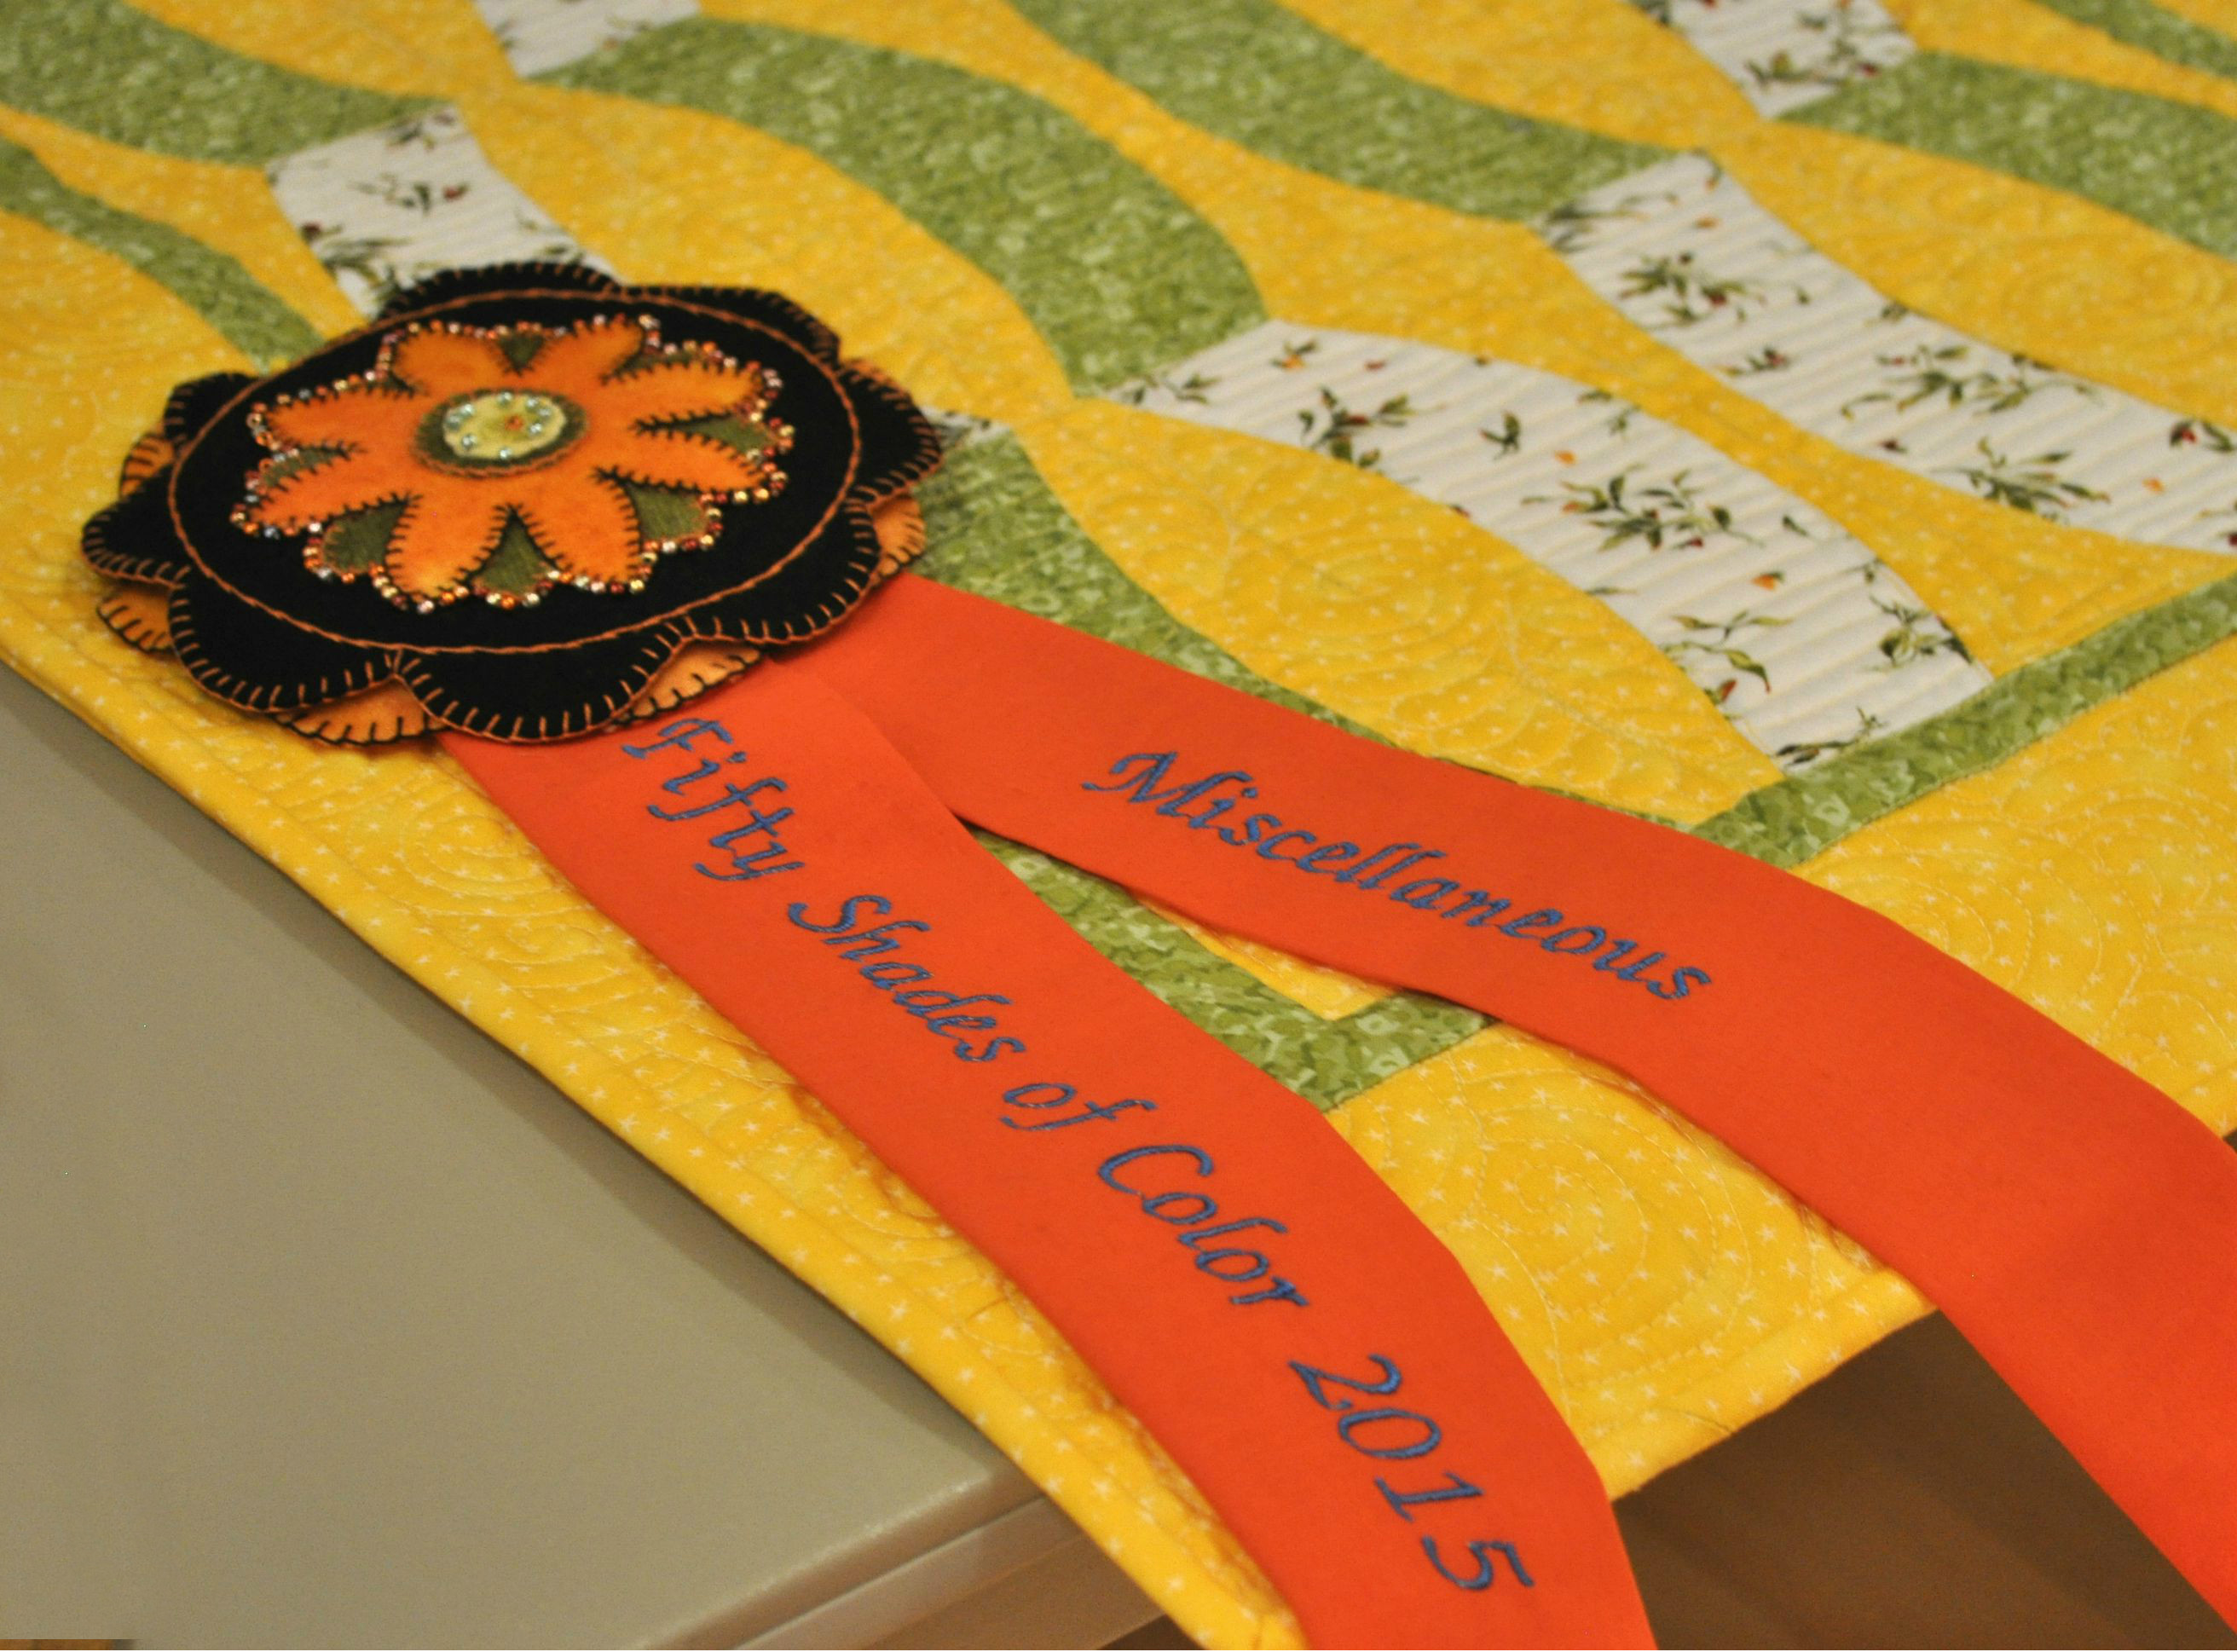 The awared ribbons were made by Karen Cochran and Susie Kinney